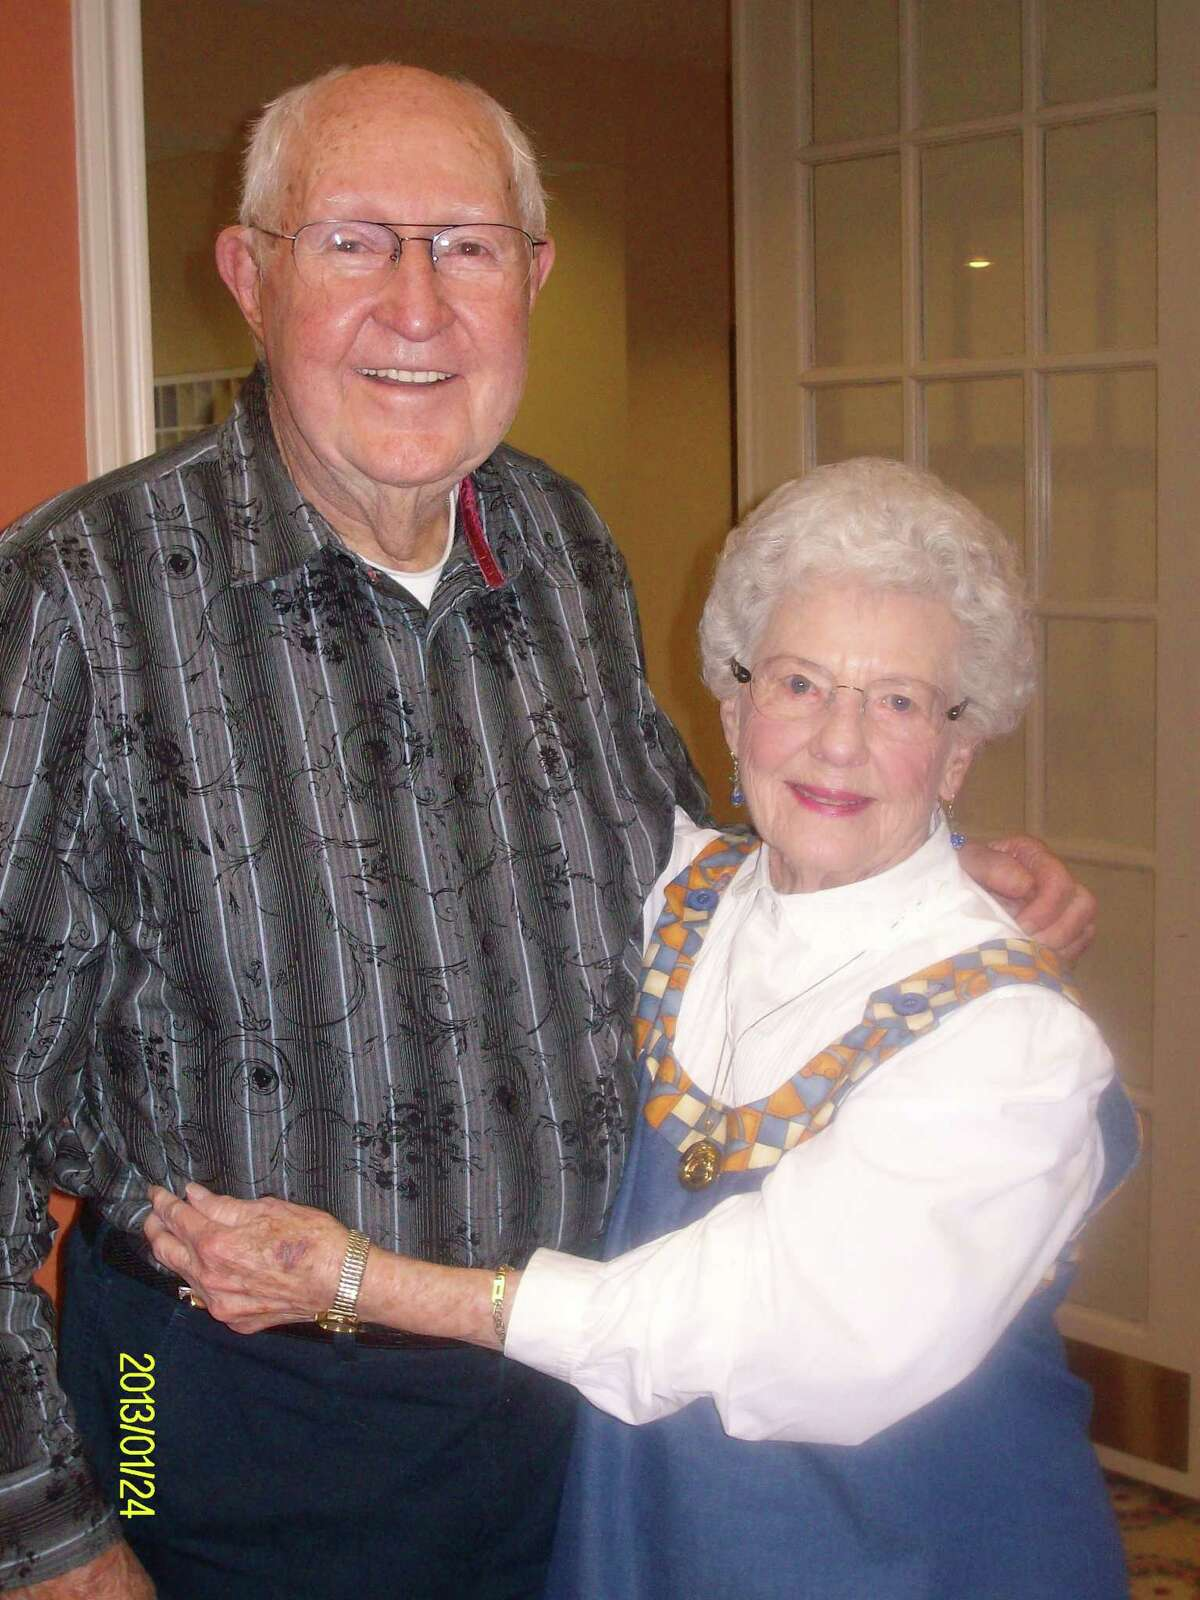 ALWAYS TOGETHER: LeRoy (91 years old) and Christine (89 years old) Gardner have been married for 67 years. The couple lives at Parkway Place senior living community.